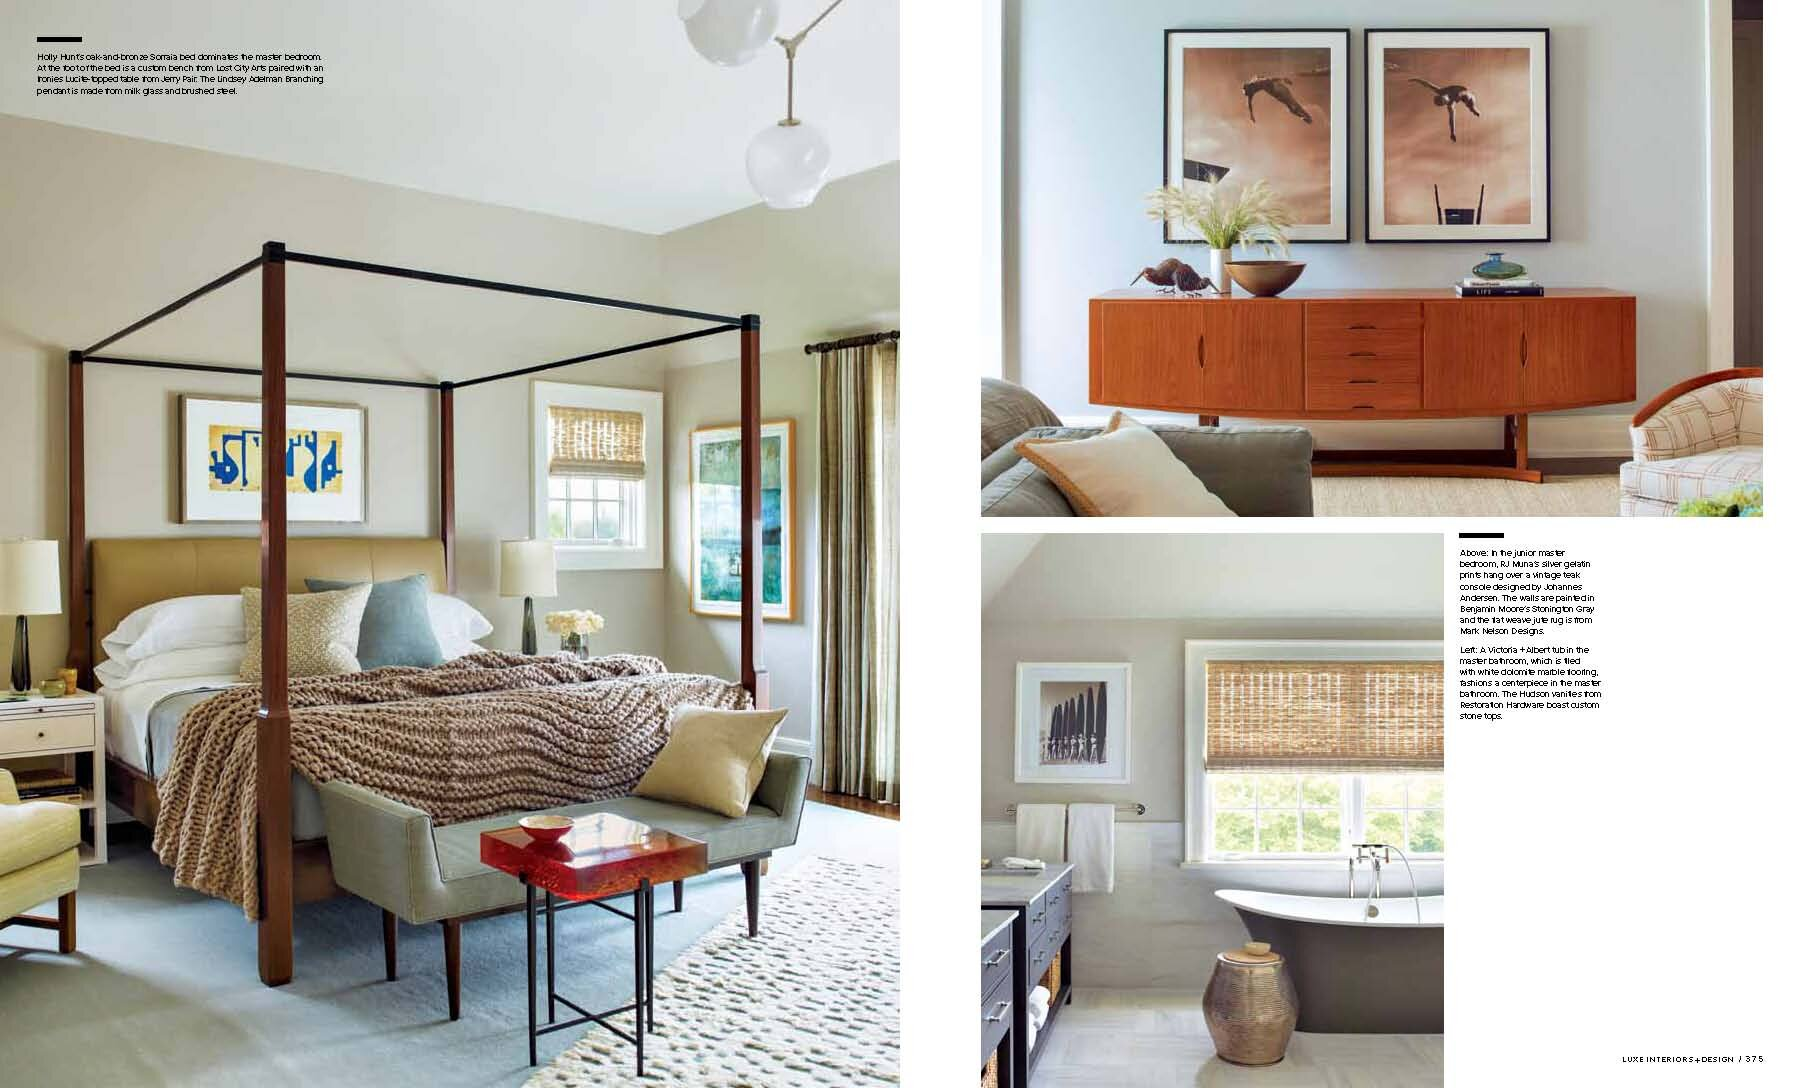 Luxe Interiors & Design. NY. Summer 2015_Page_7.jpg